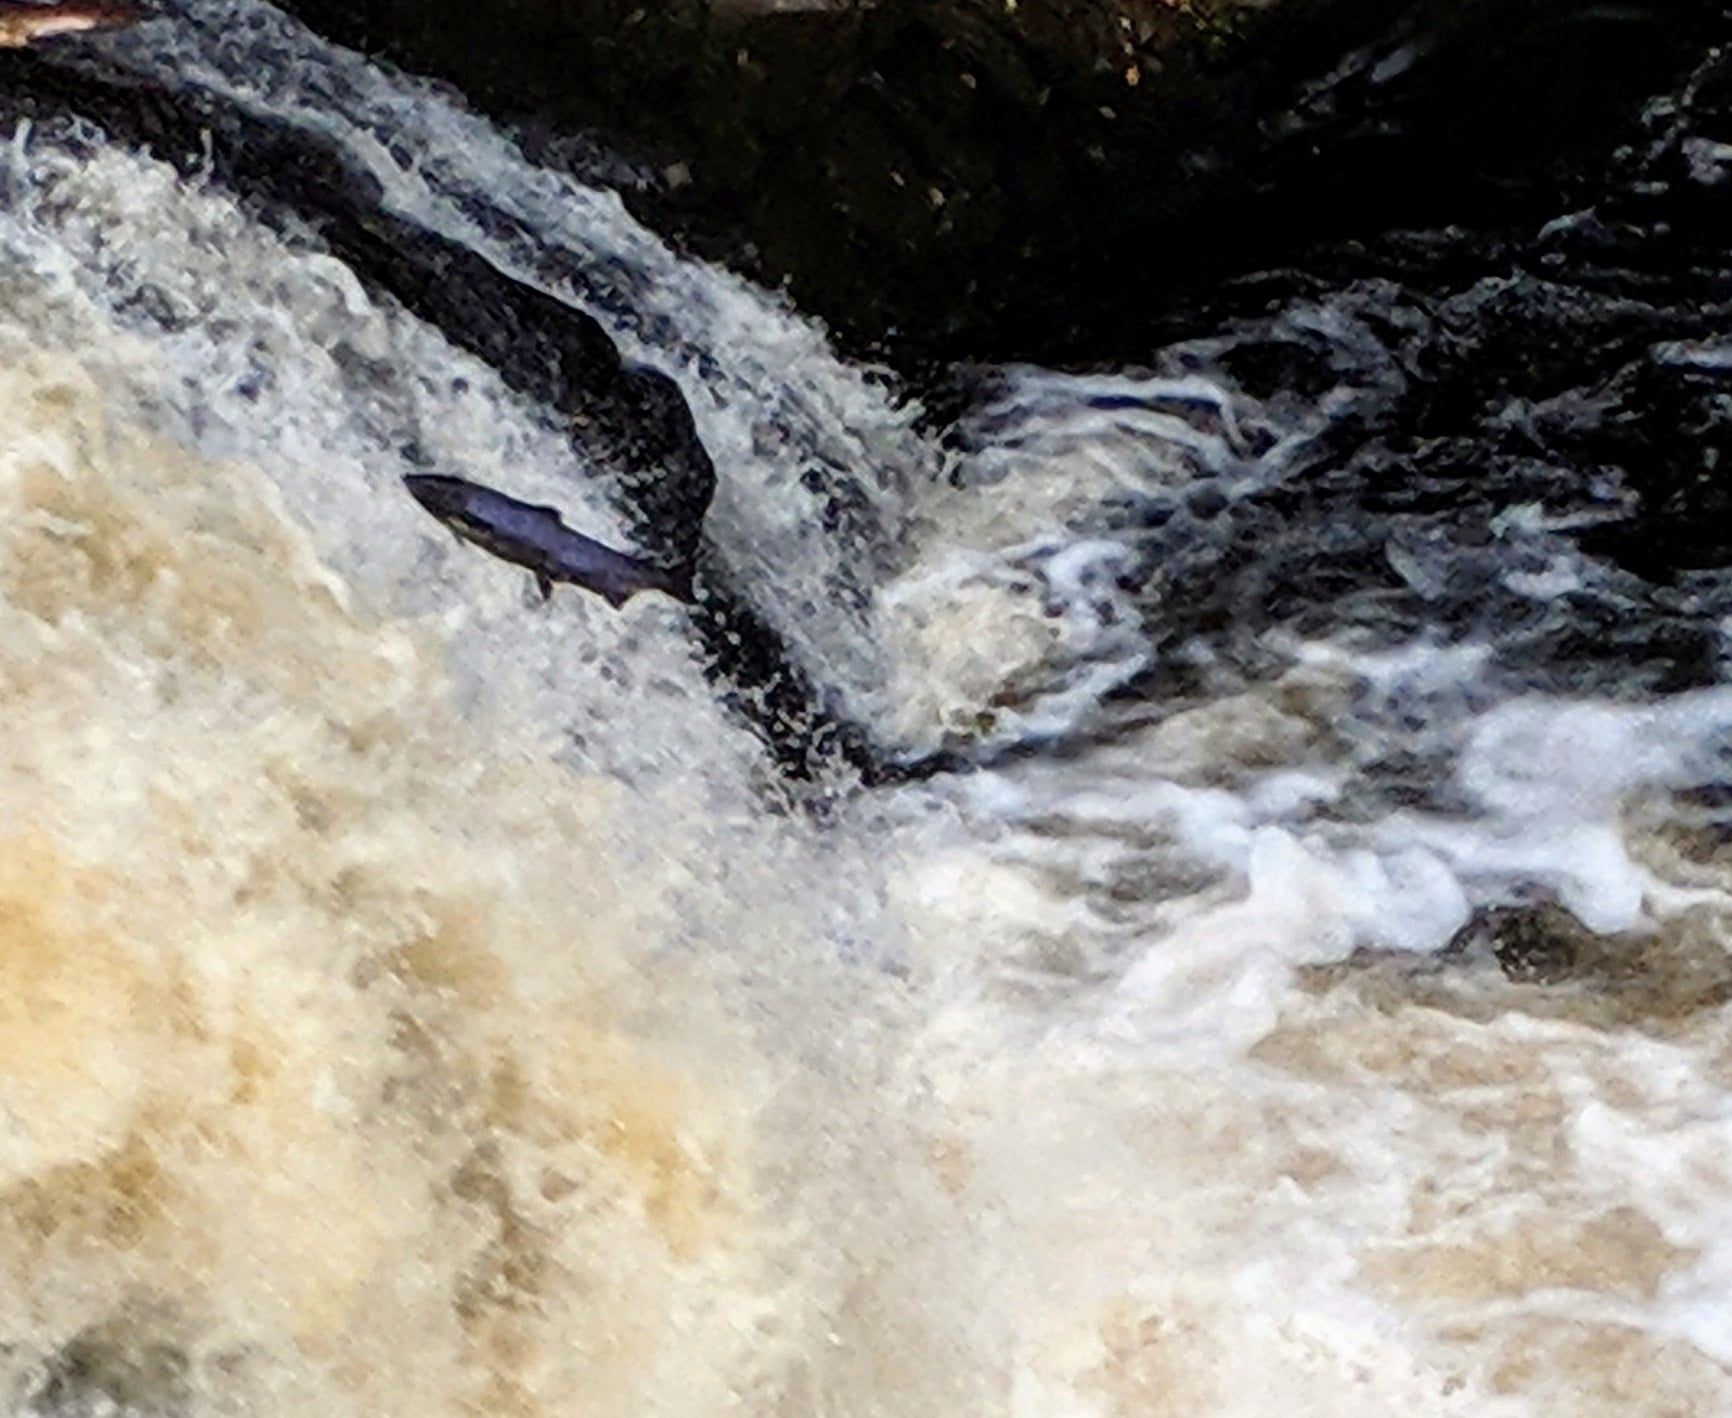 Salmon leaping in water